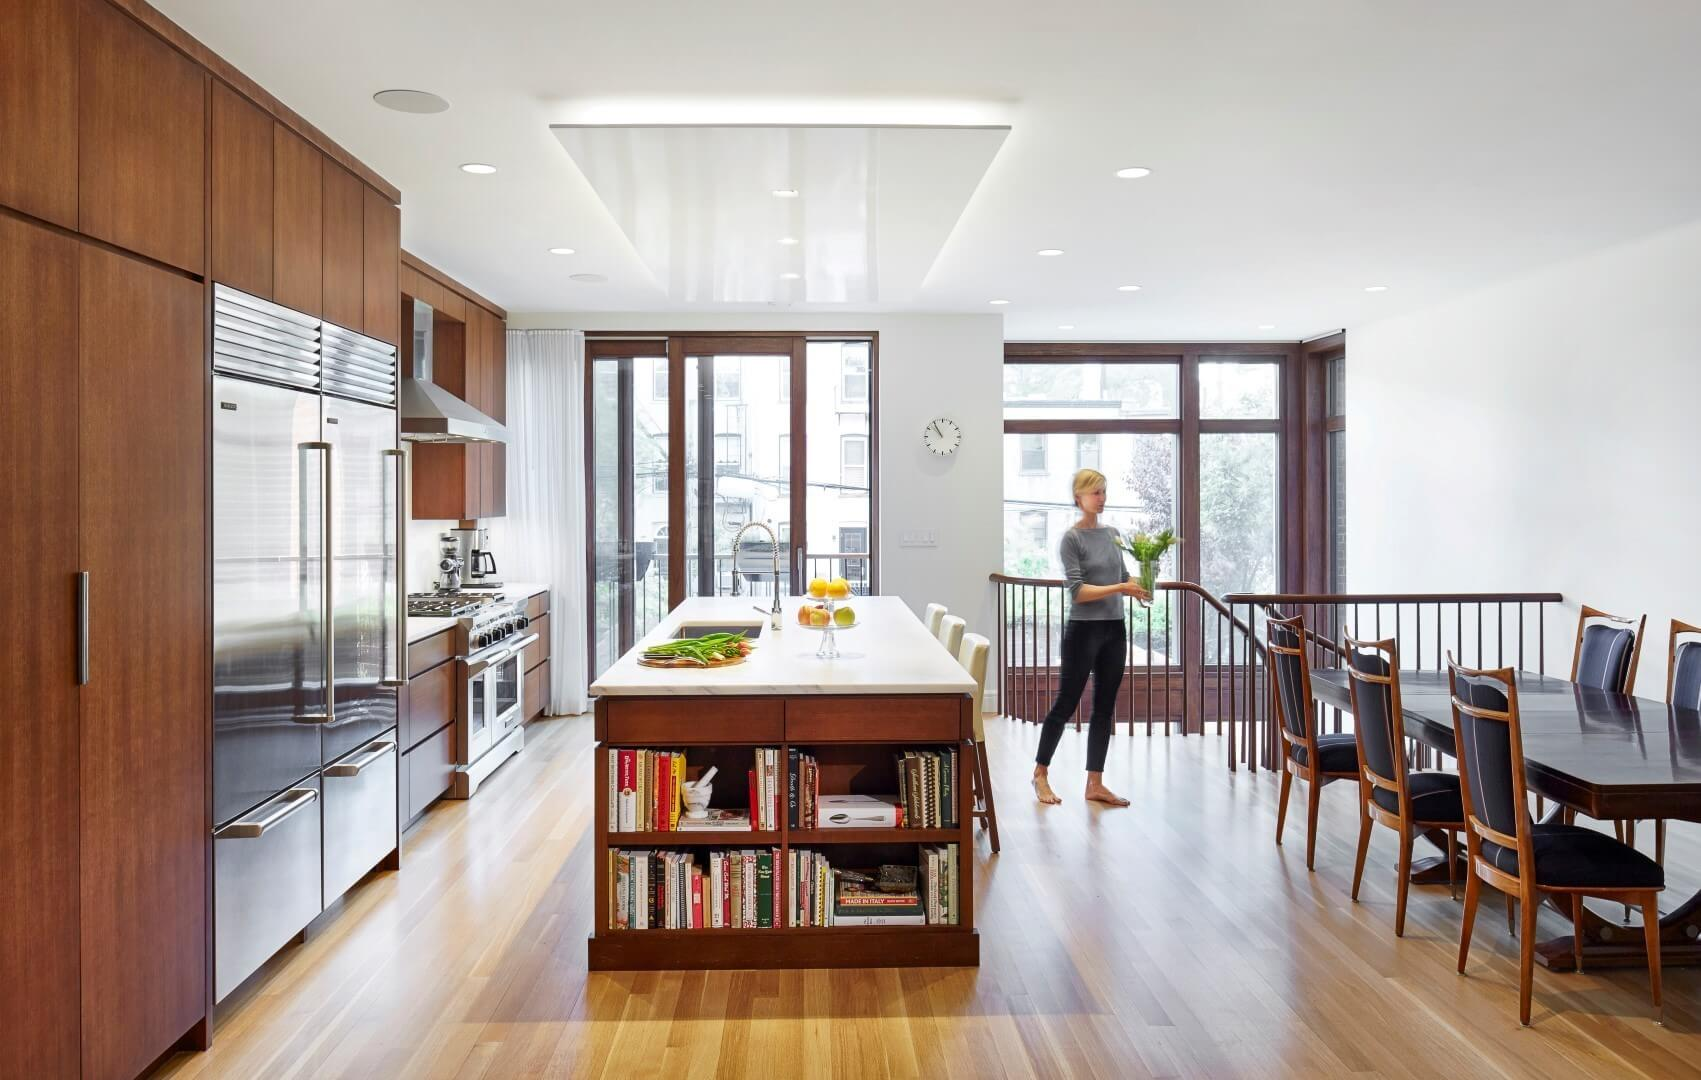 Brooklyn Passive House Plus by Baxt Ingui Architects